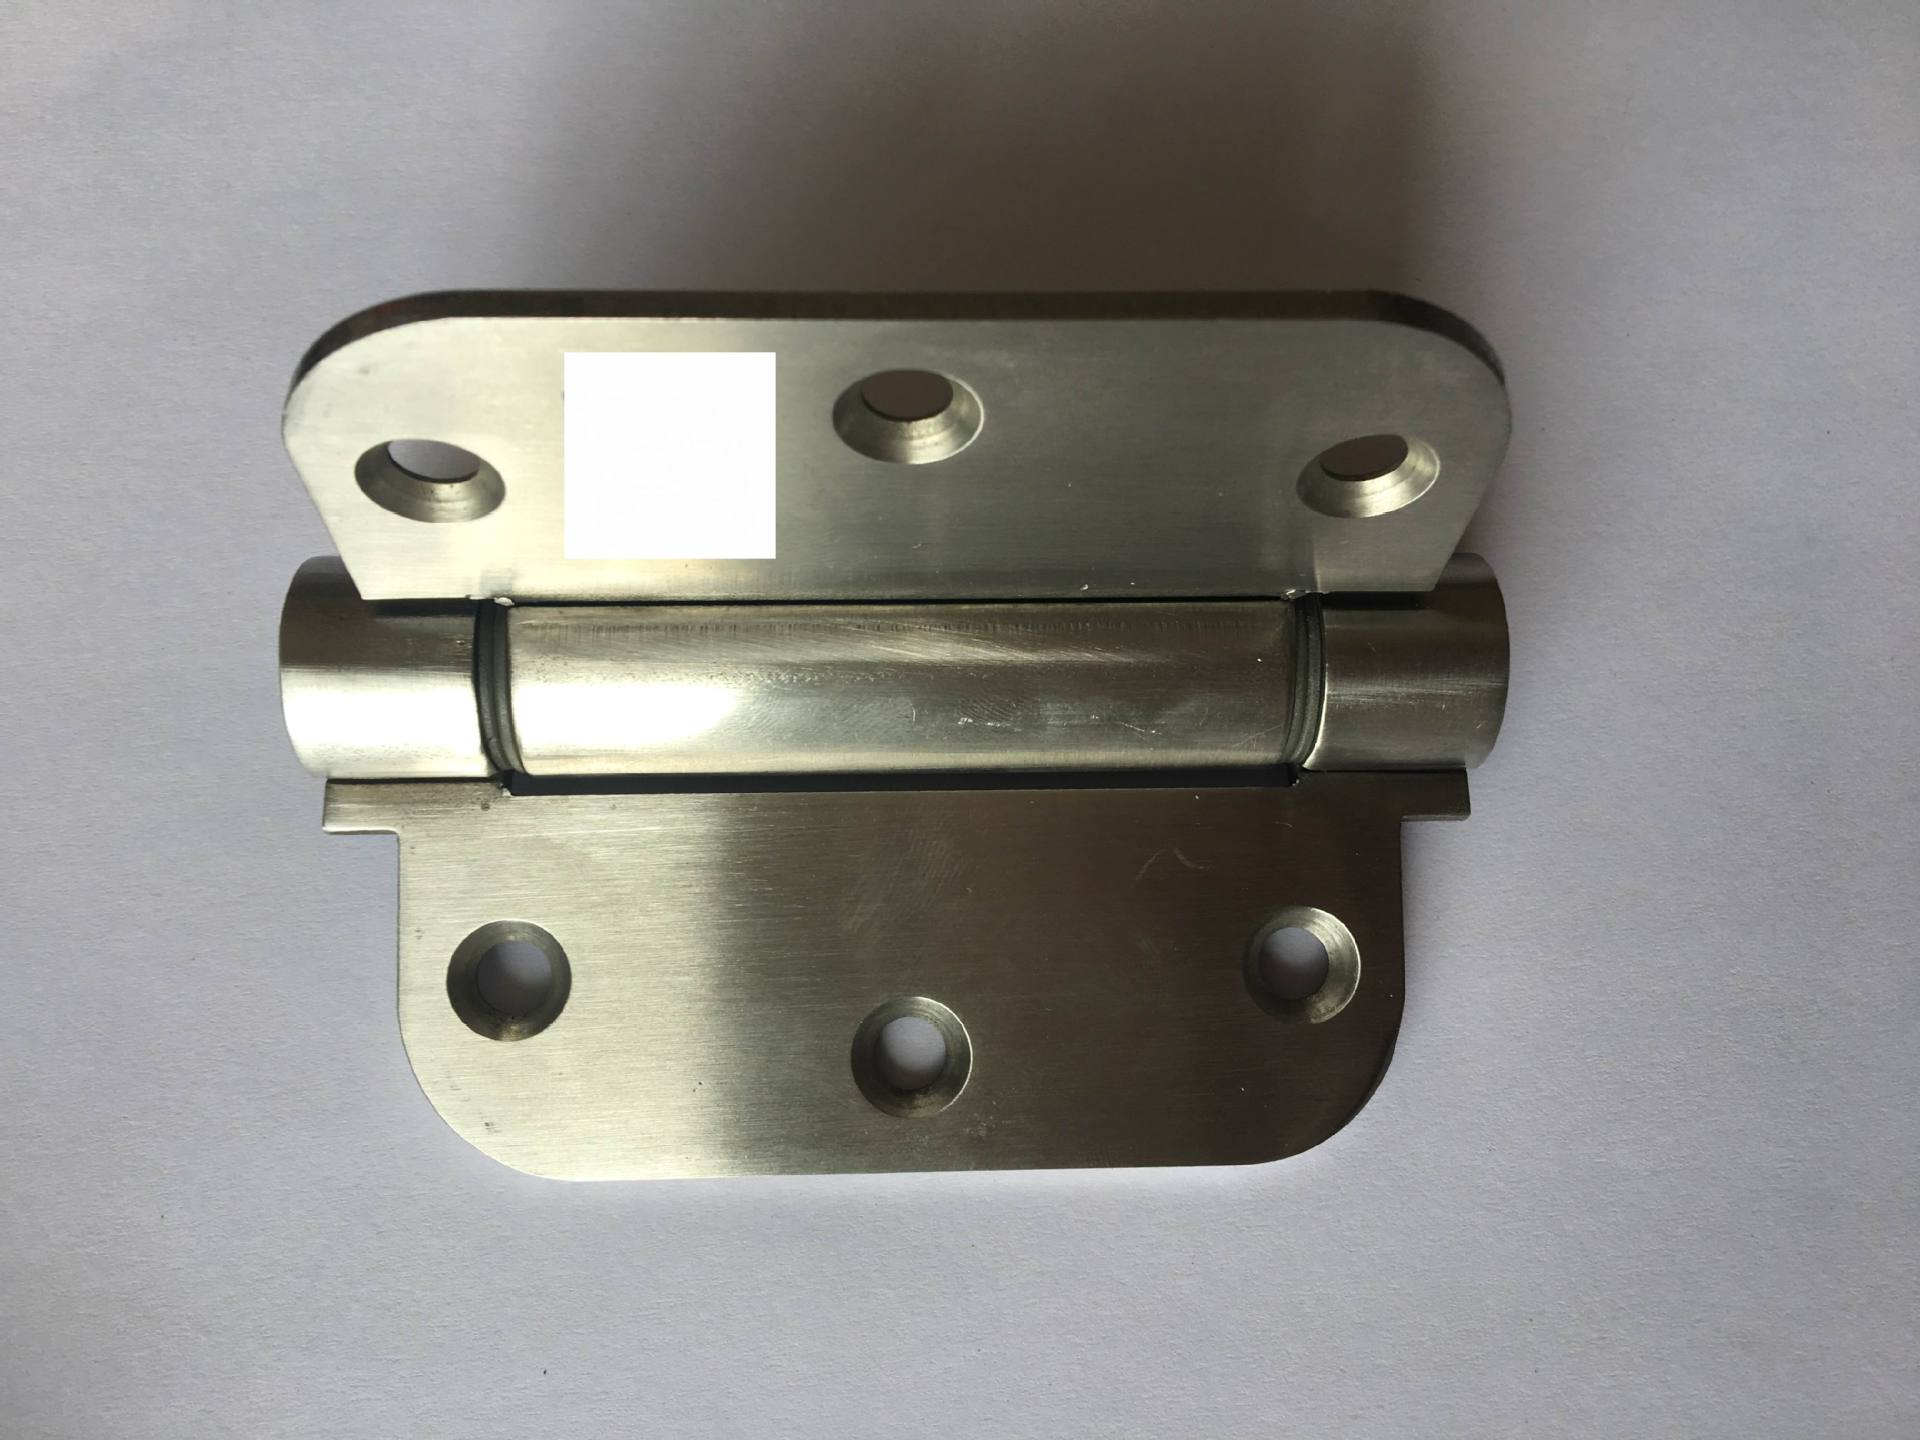 Spring Hinge Automatic Closing Torsion Silent Round Corner Hinges Flat Furniture hinges Door hinge SUS 304 stainless steel stayer 37552